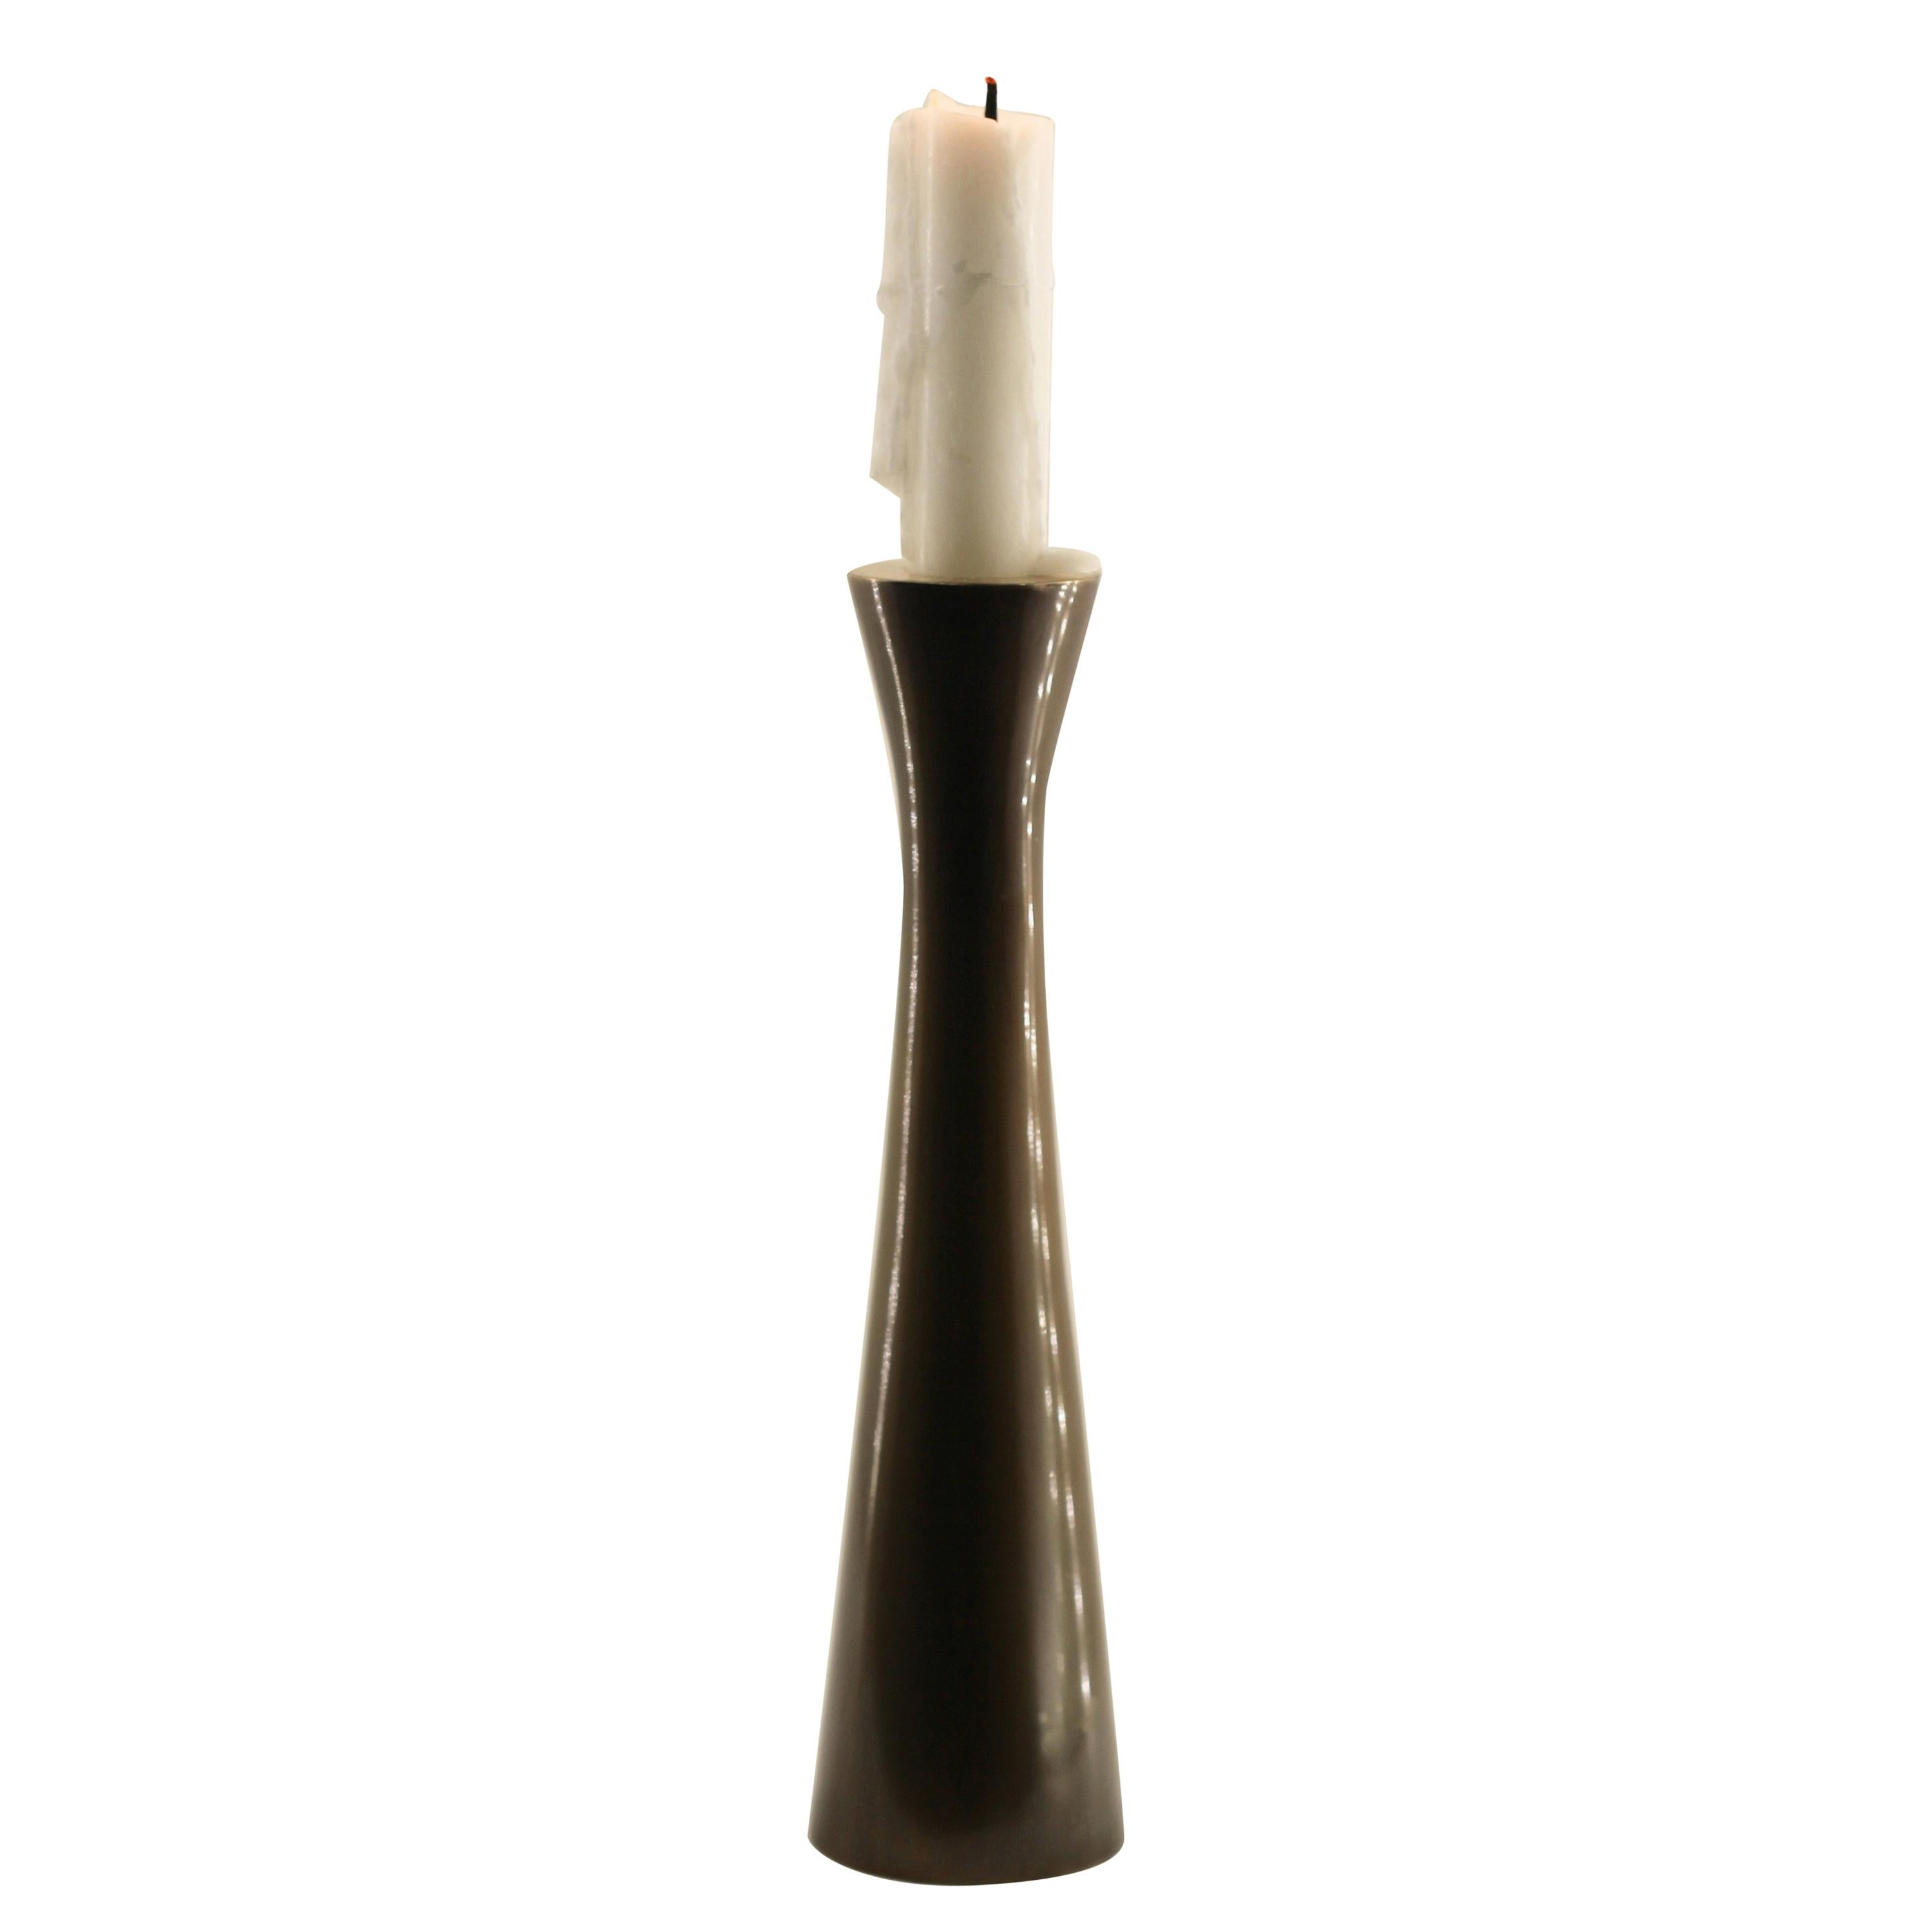 Tall Brass Tapered Candle Holder with Bronze Patina